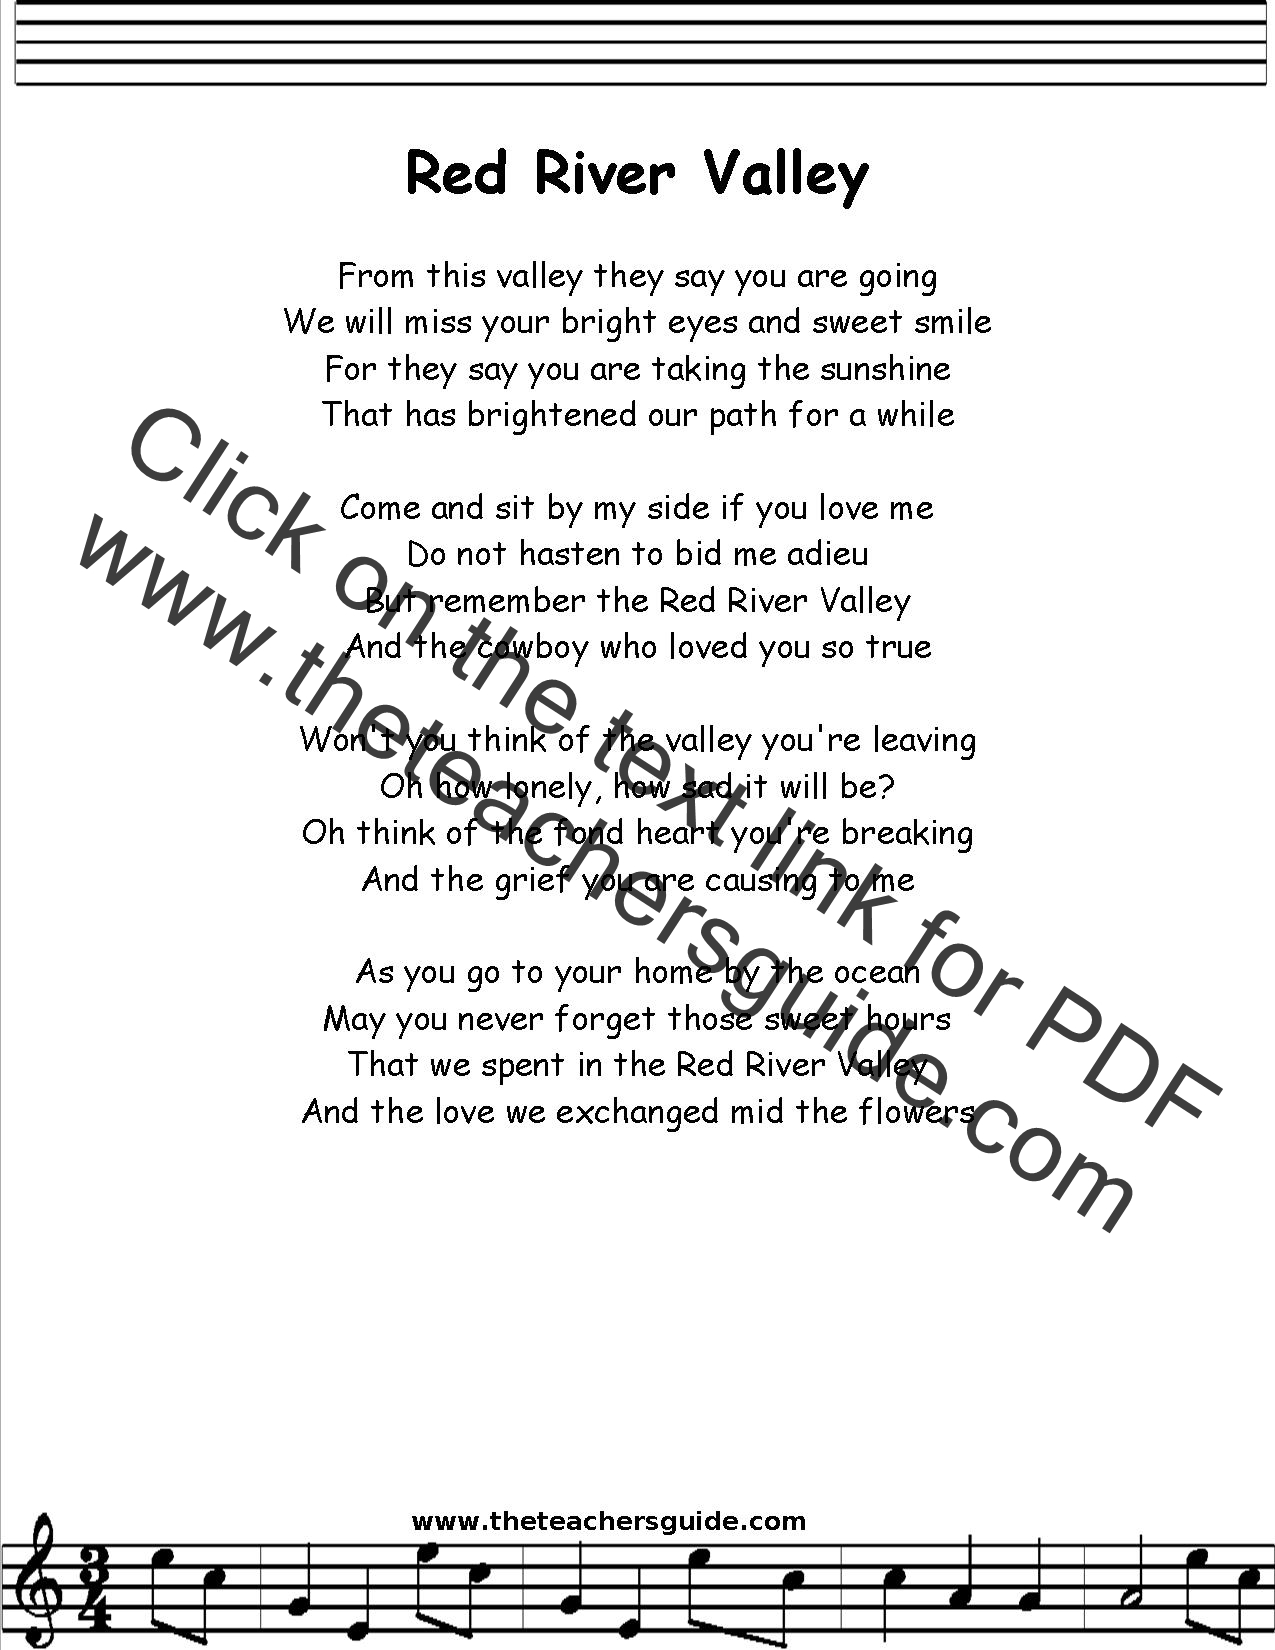 Red river valley lyrics printout midi and video